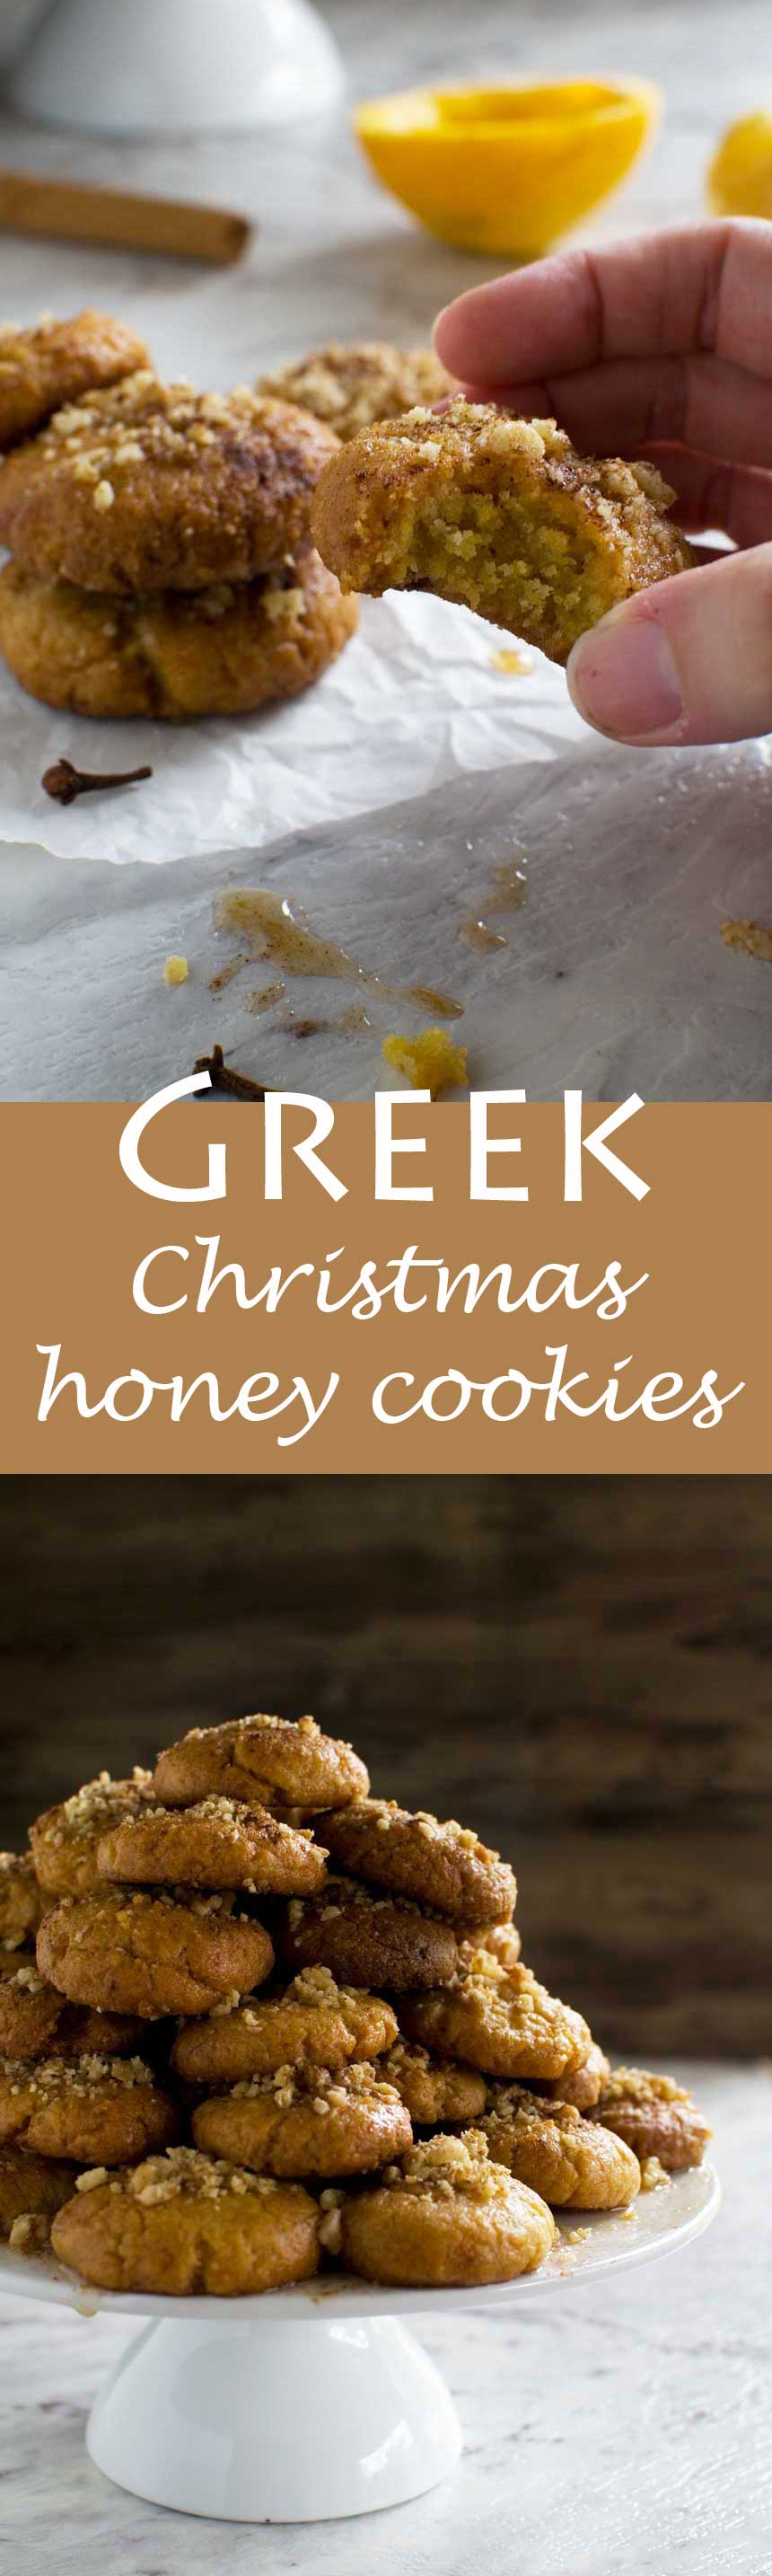 greek christmas honey cookies seriously addictive - Greek Christmas Cookies